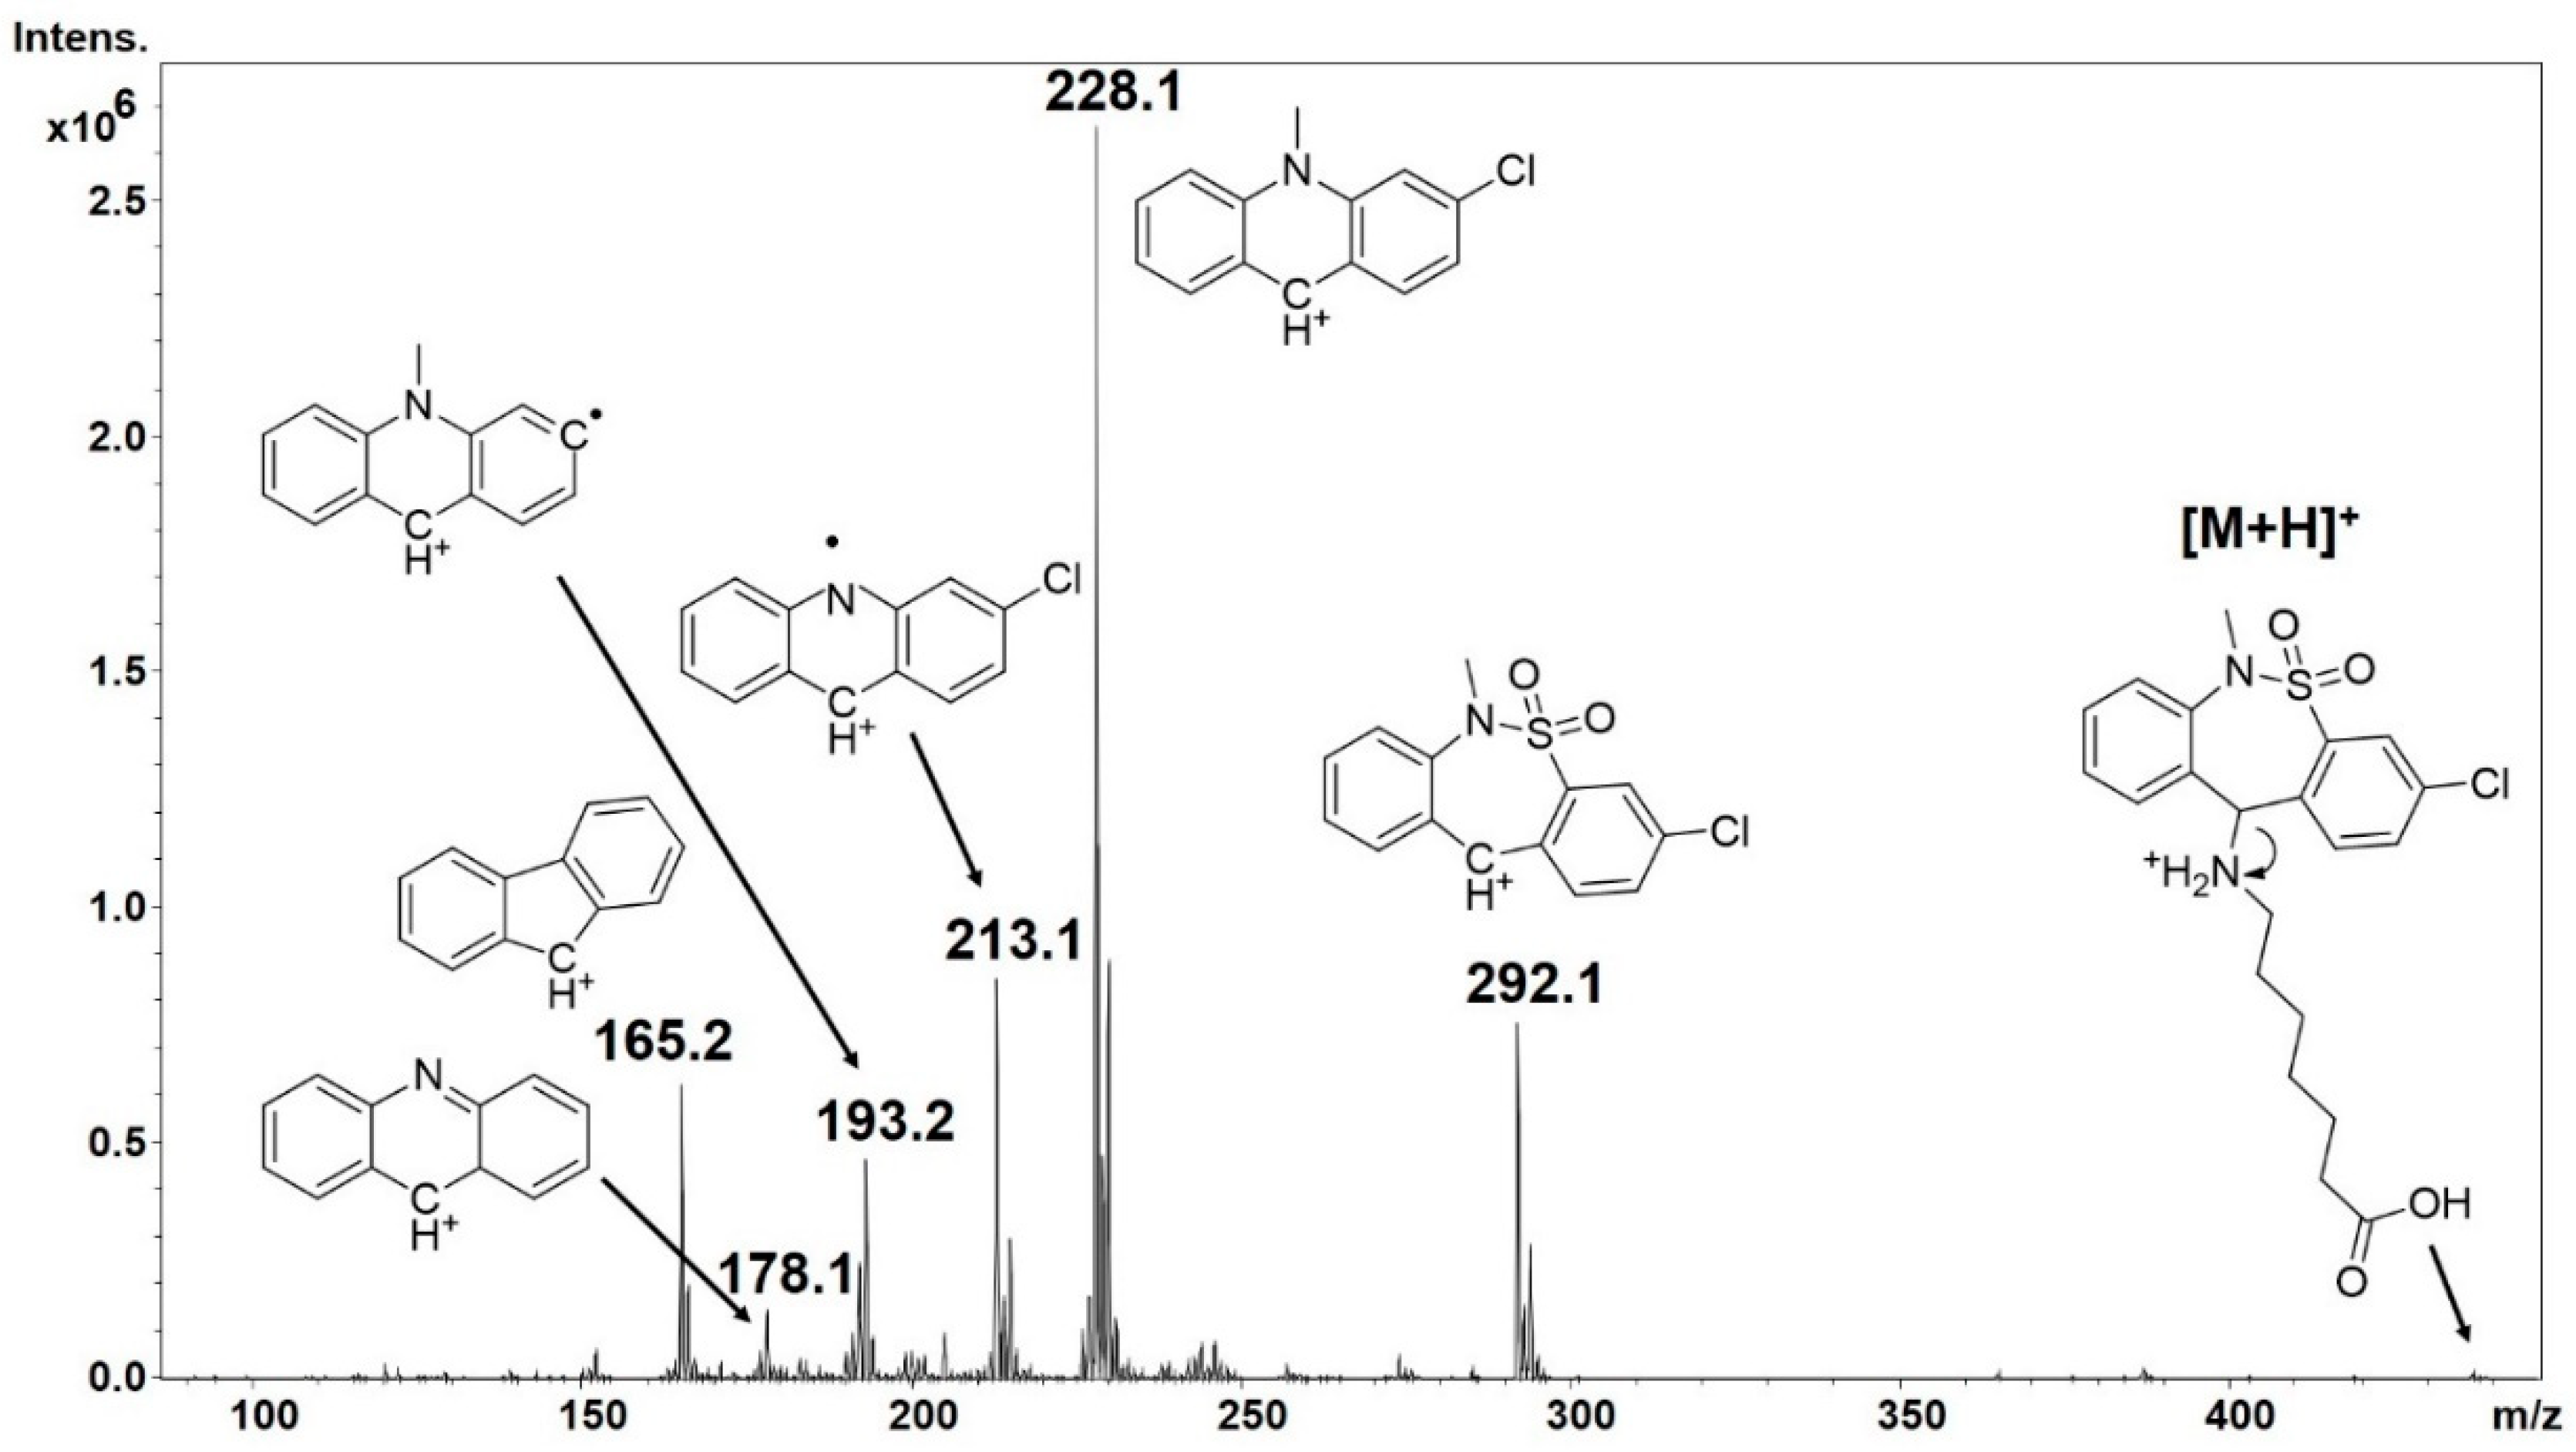 Molecules | Free Full-Text | An Organic Chemist's Guide to